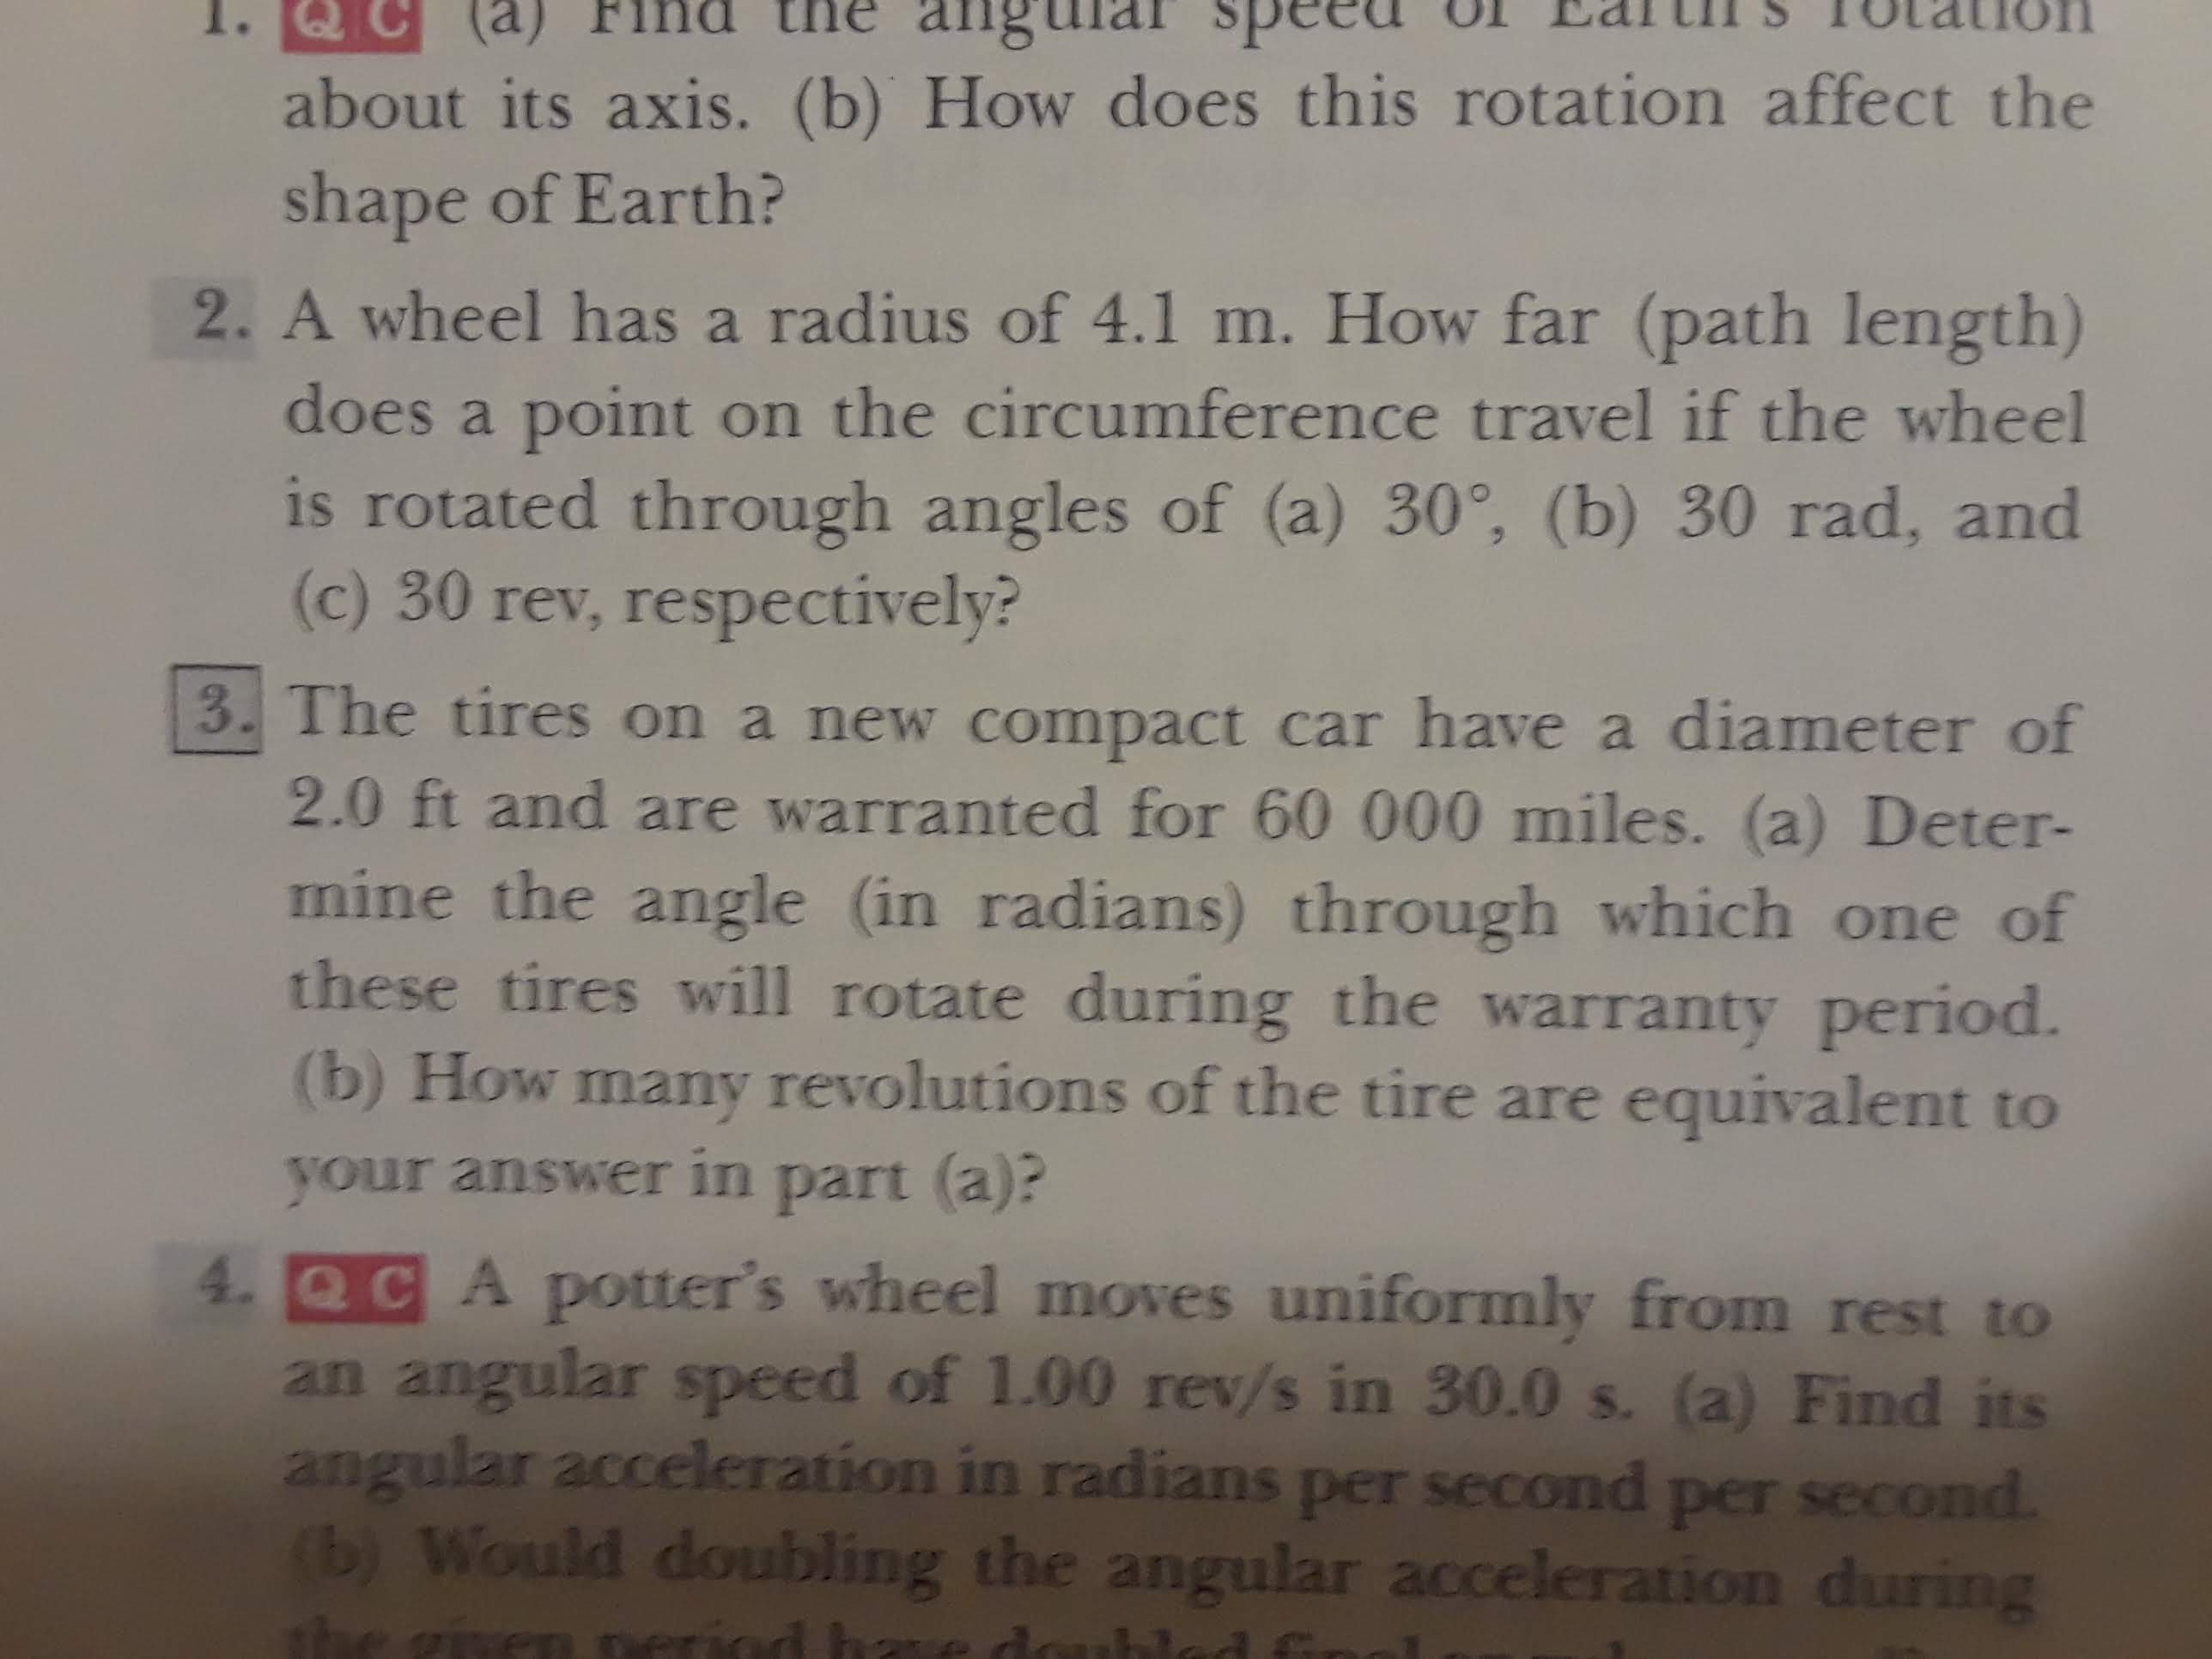 ang (a) about its axis. (b) How does this rotation affect the shape of Earth? 2. A wheel has a radius of 4.1 m. How far (path length) does a point on the circumference travel if the wheel is rotated through angles of (a) 30, (b) 30 rad, and (c) 30 rev, respectively? 3. The tires on a new compact car have a diameter of 2.0 ft and are warranted for 60 000 miles. (a) Deter- mine the angle (in radians) through which one of these tires will rotate during the warranty period. (b) How many revolutions of the tire are equivalent to your answer in part (a):? 4 Q C A potter's wheel moves uniformly from rest to an angular speed of 1.00 rev/s in 30.0 s. (a) Find its angular acceleration in radians per second per second. (b) Would doubling the angular acceleration during the given period ha thlad